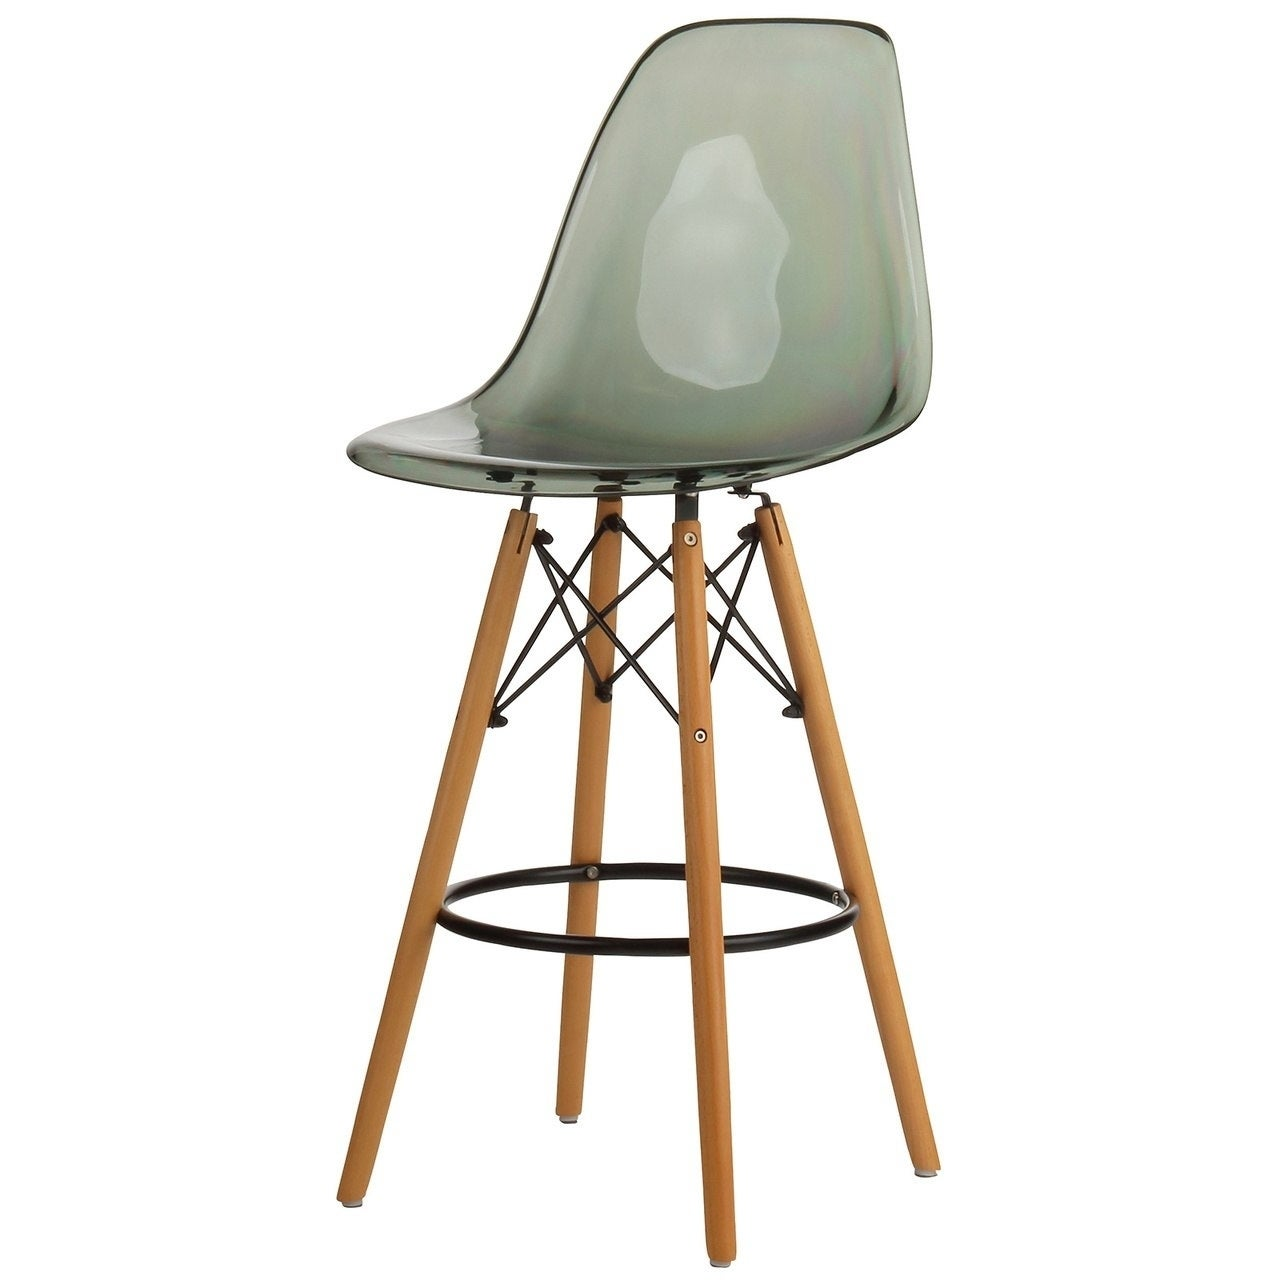 Shop Mid Century Modern 26 Inch Counter Bar Stool With Wood Base Overstock 22287714